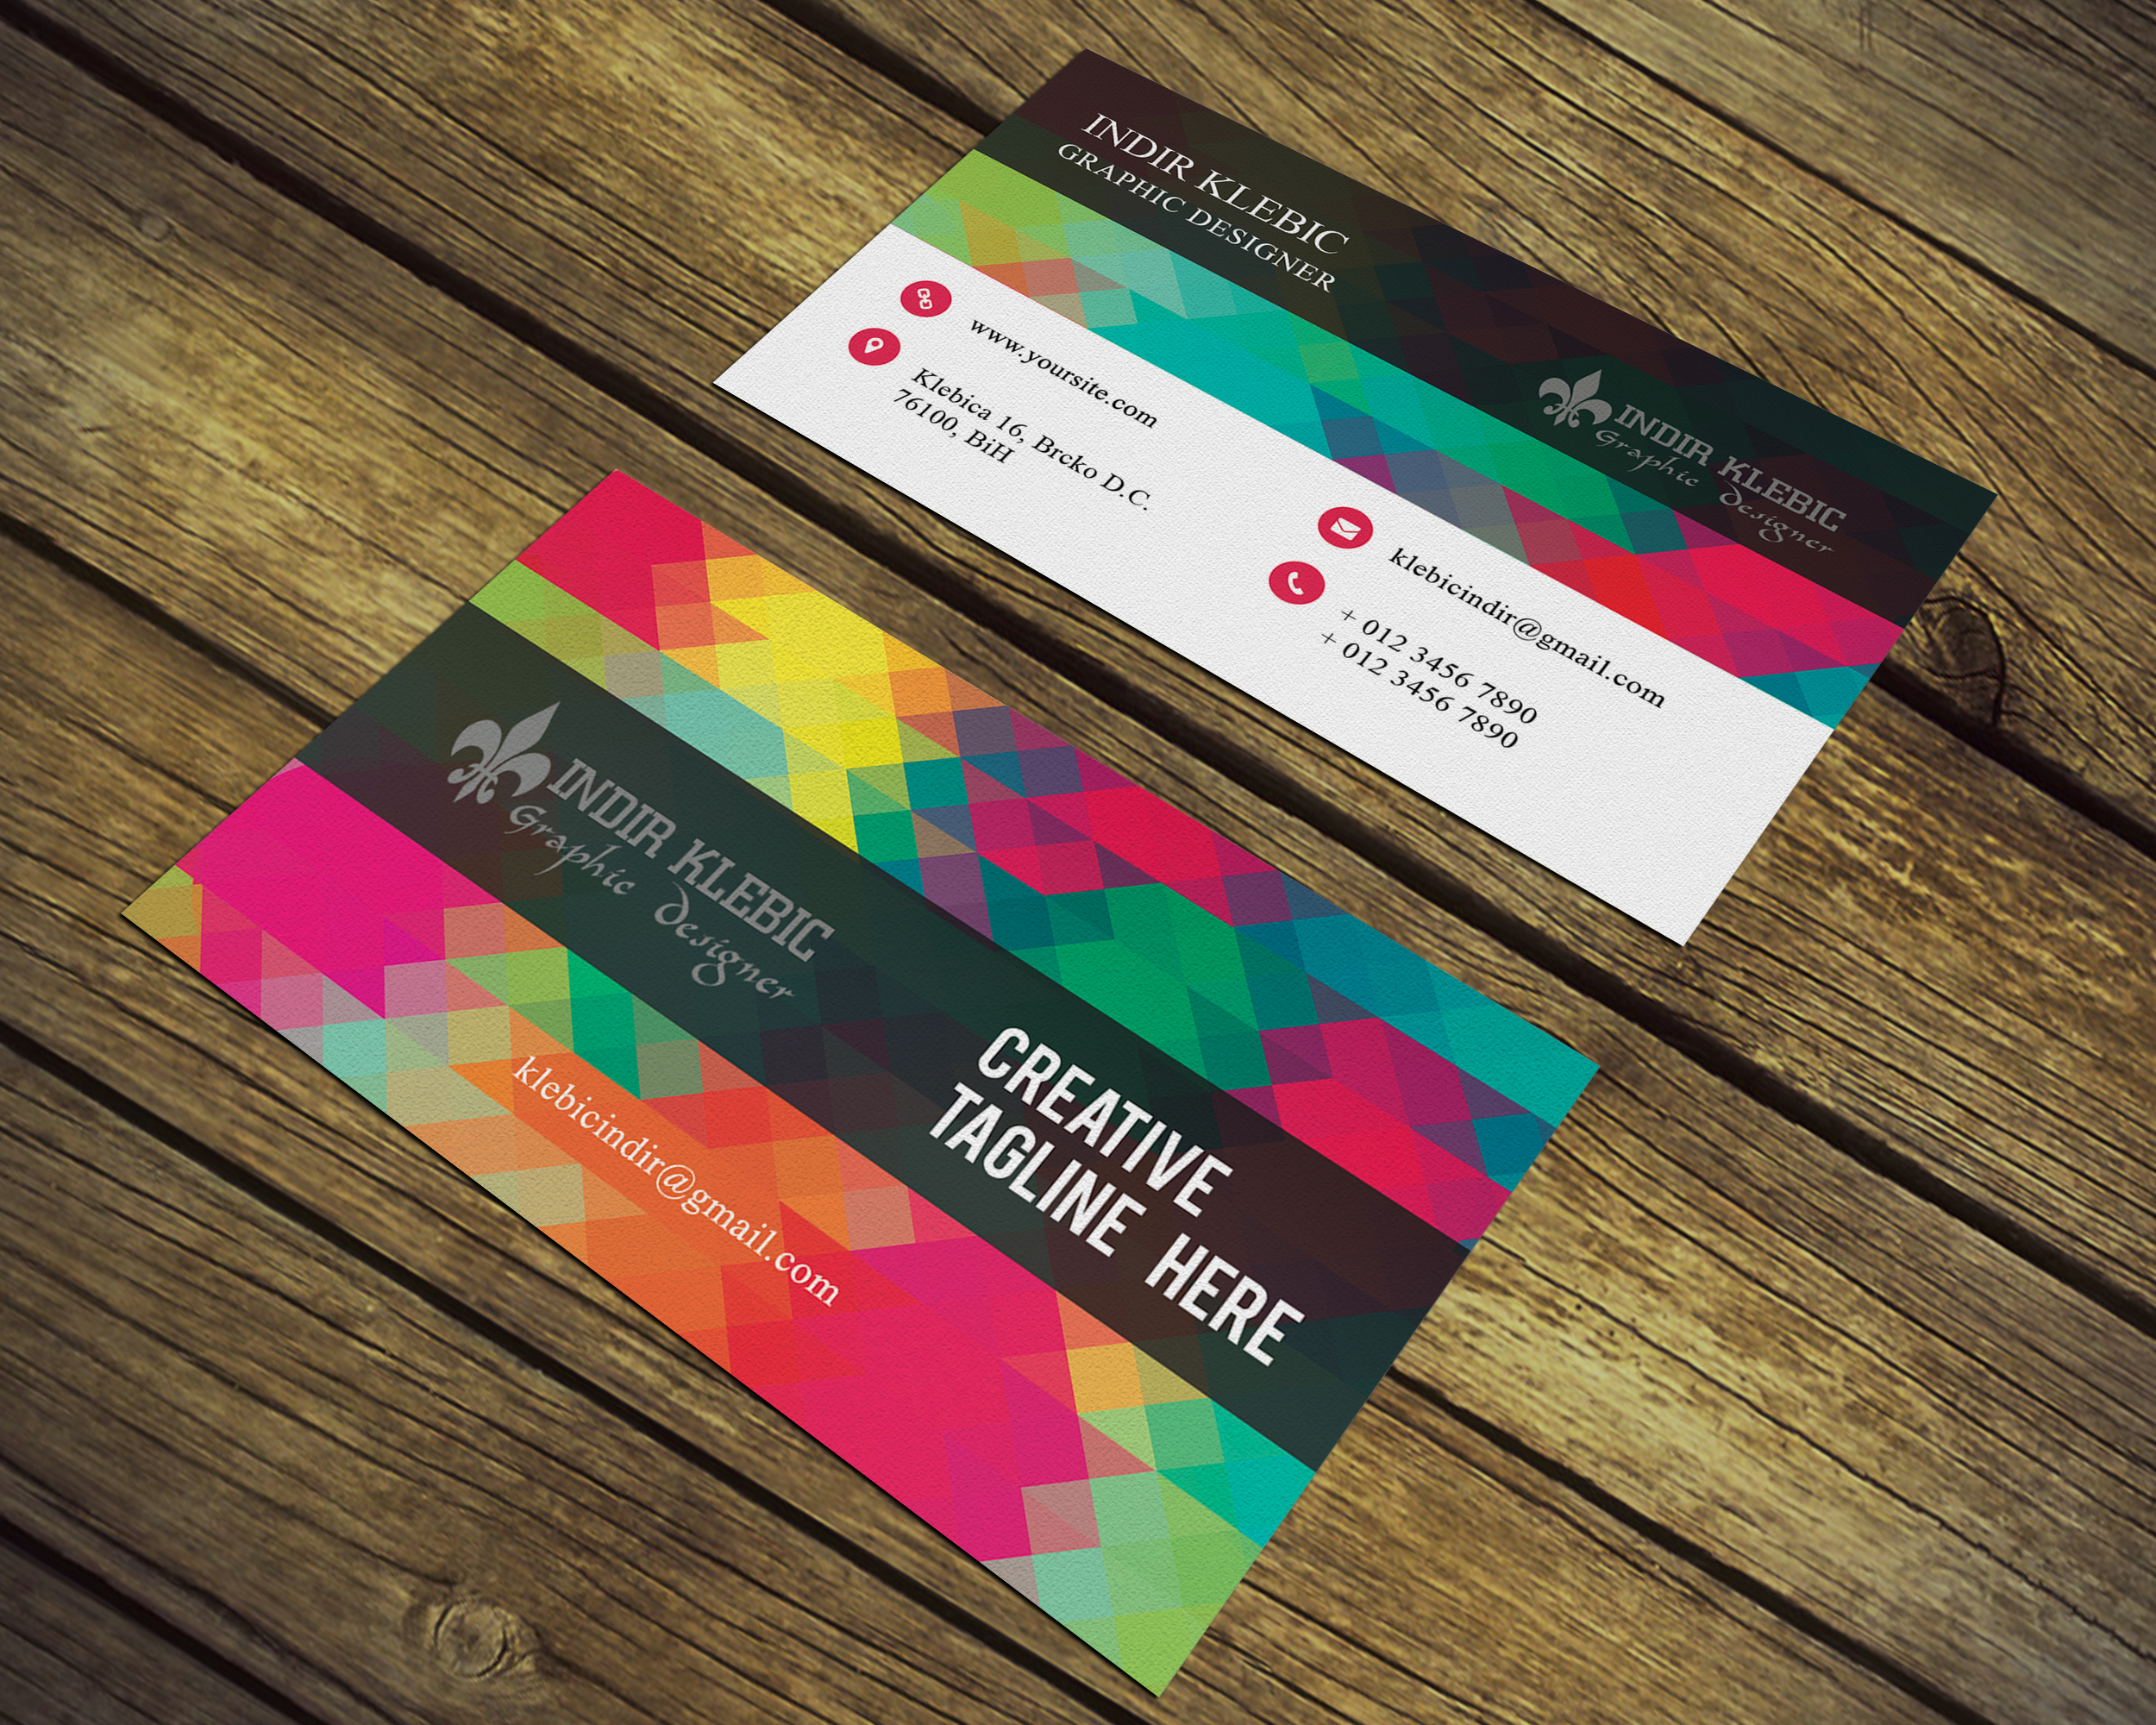 high quality design business card for 5 seoclerks